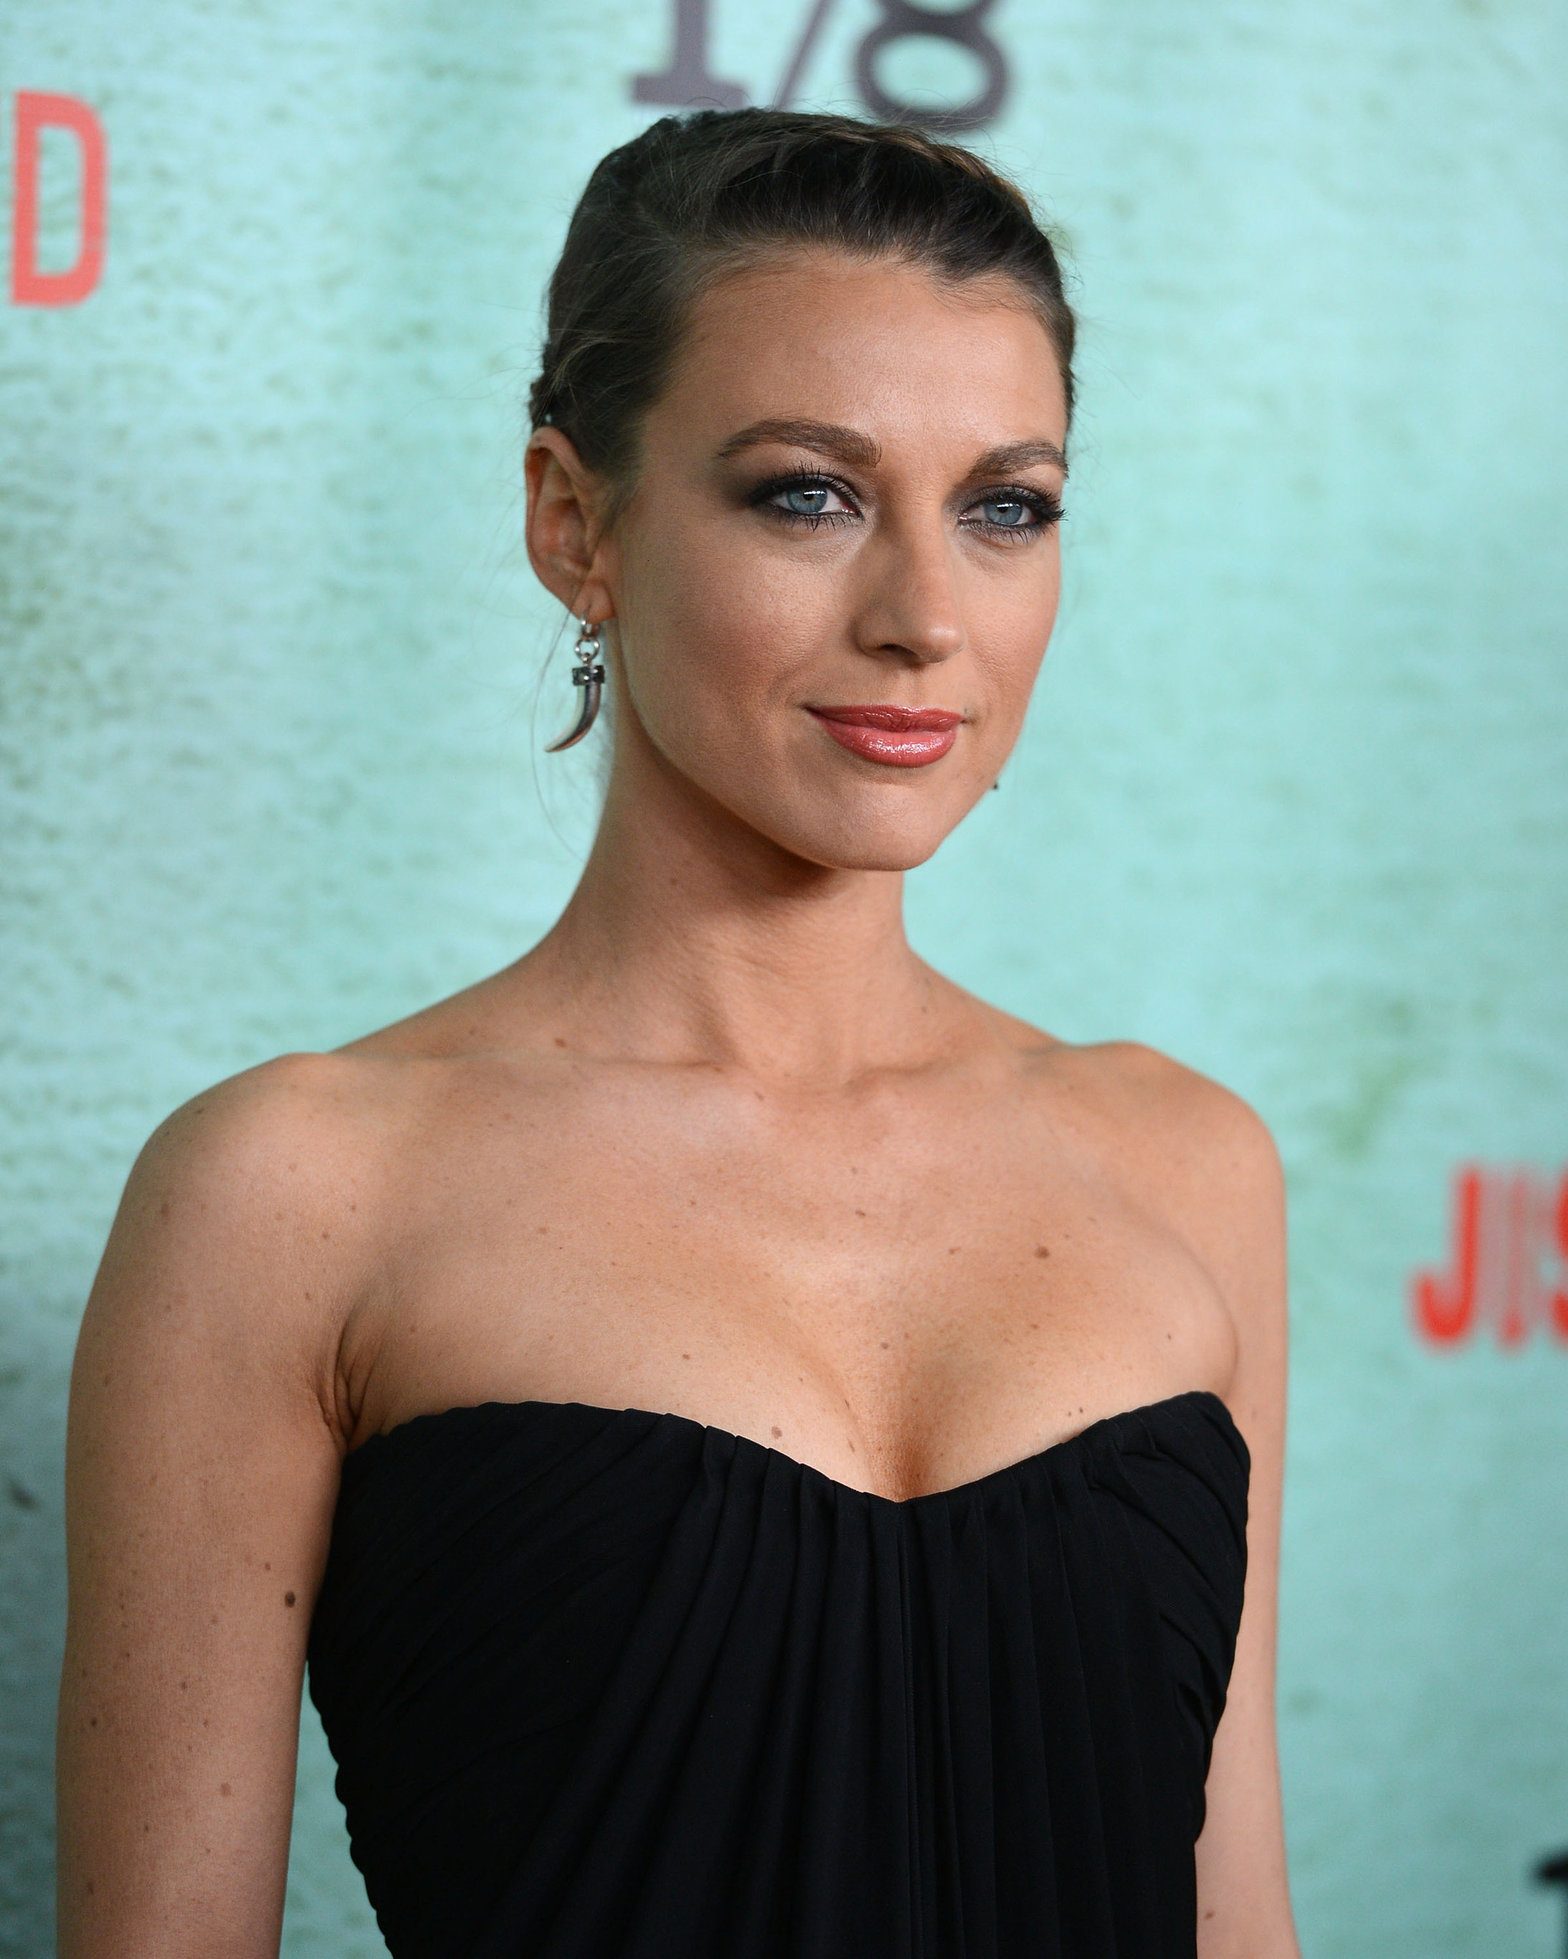 Natalie Zea FX Network's Justified Season 4 premiere in Hollywood 1/5/13